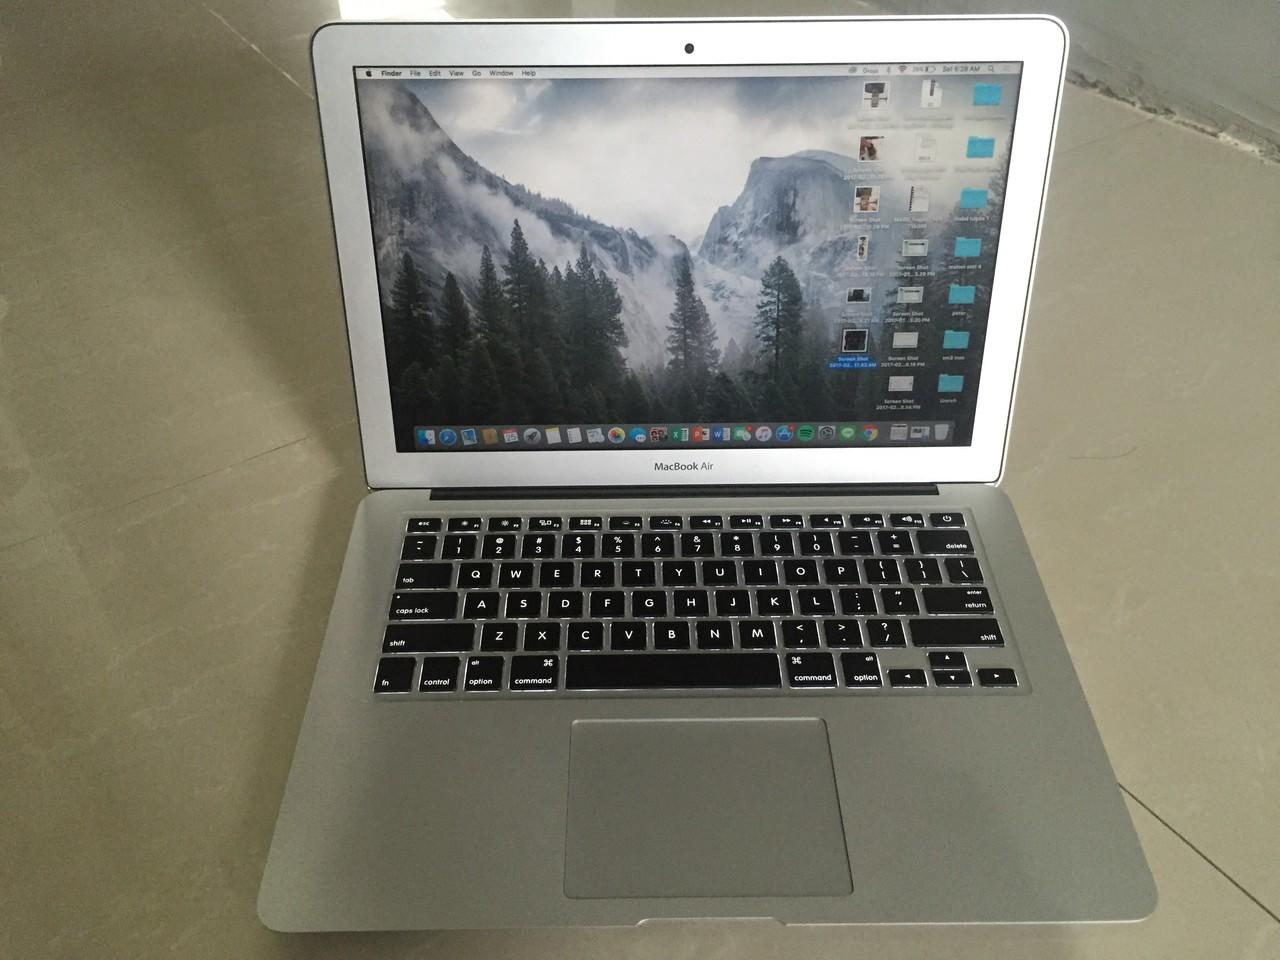 Review Macbook Air (Pengguna)